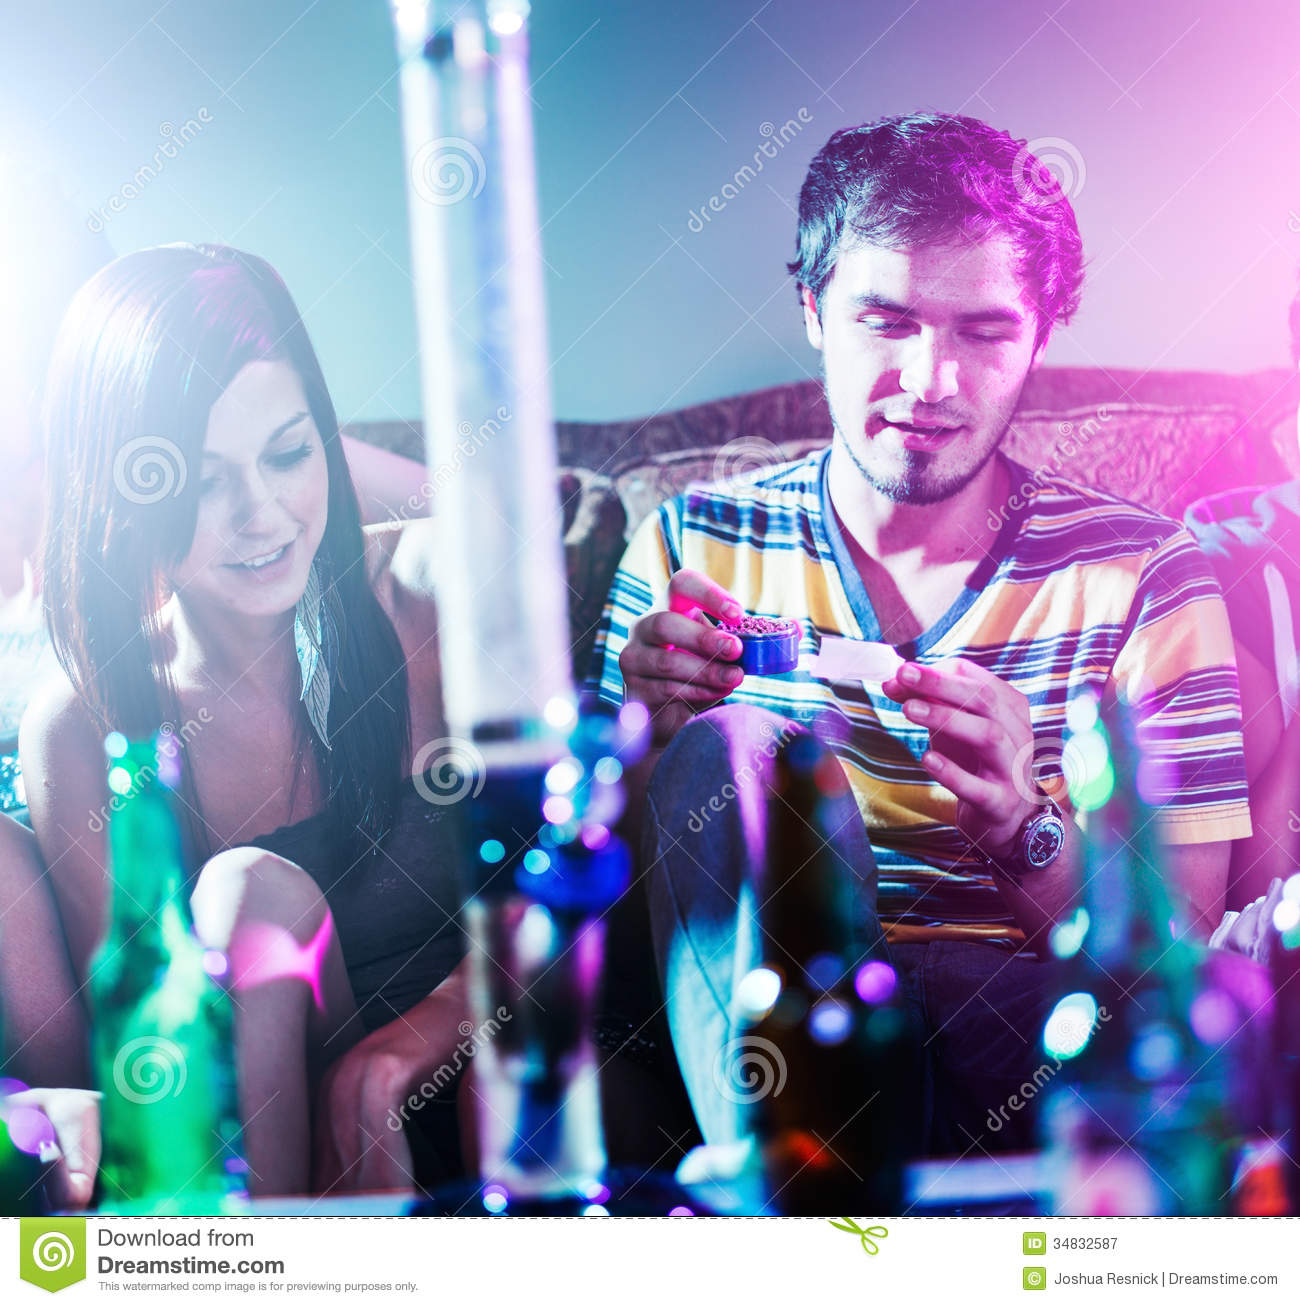 An introduction to the issue of young adults and alcohol